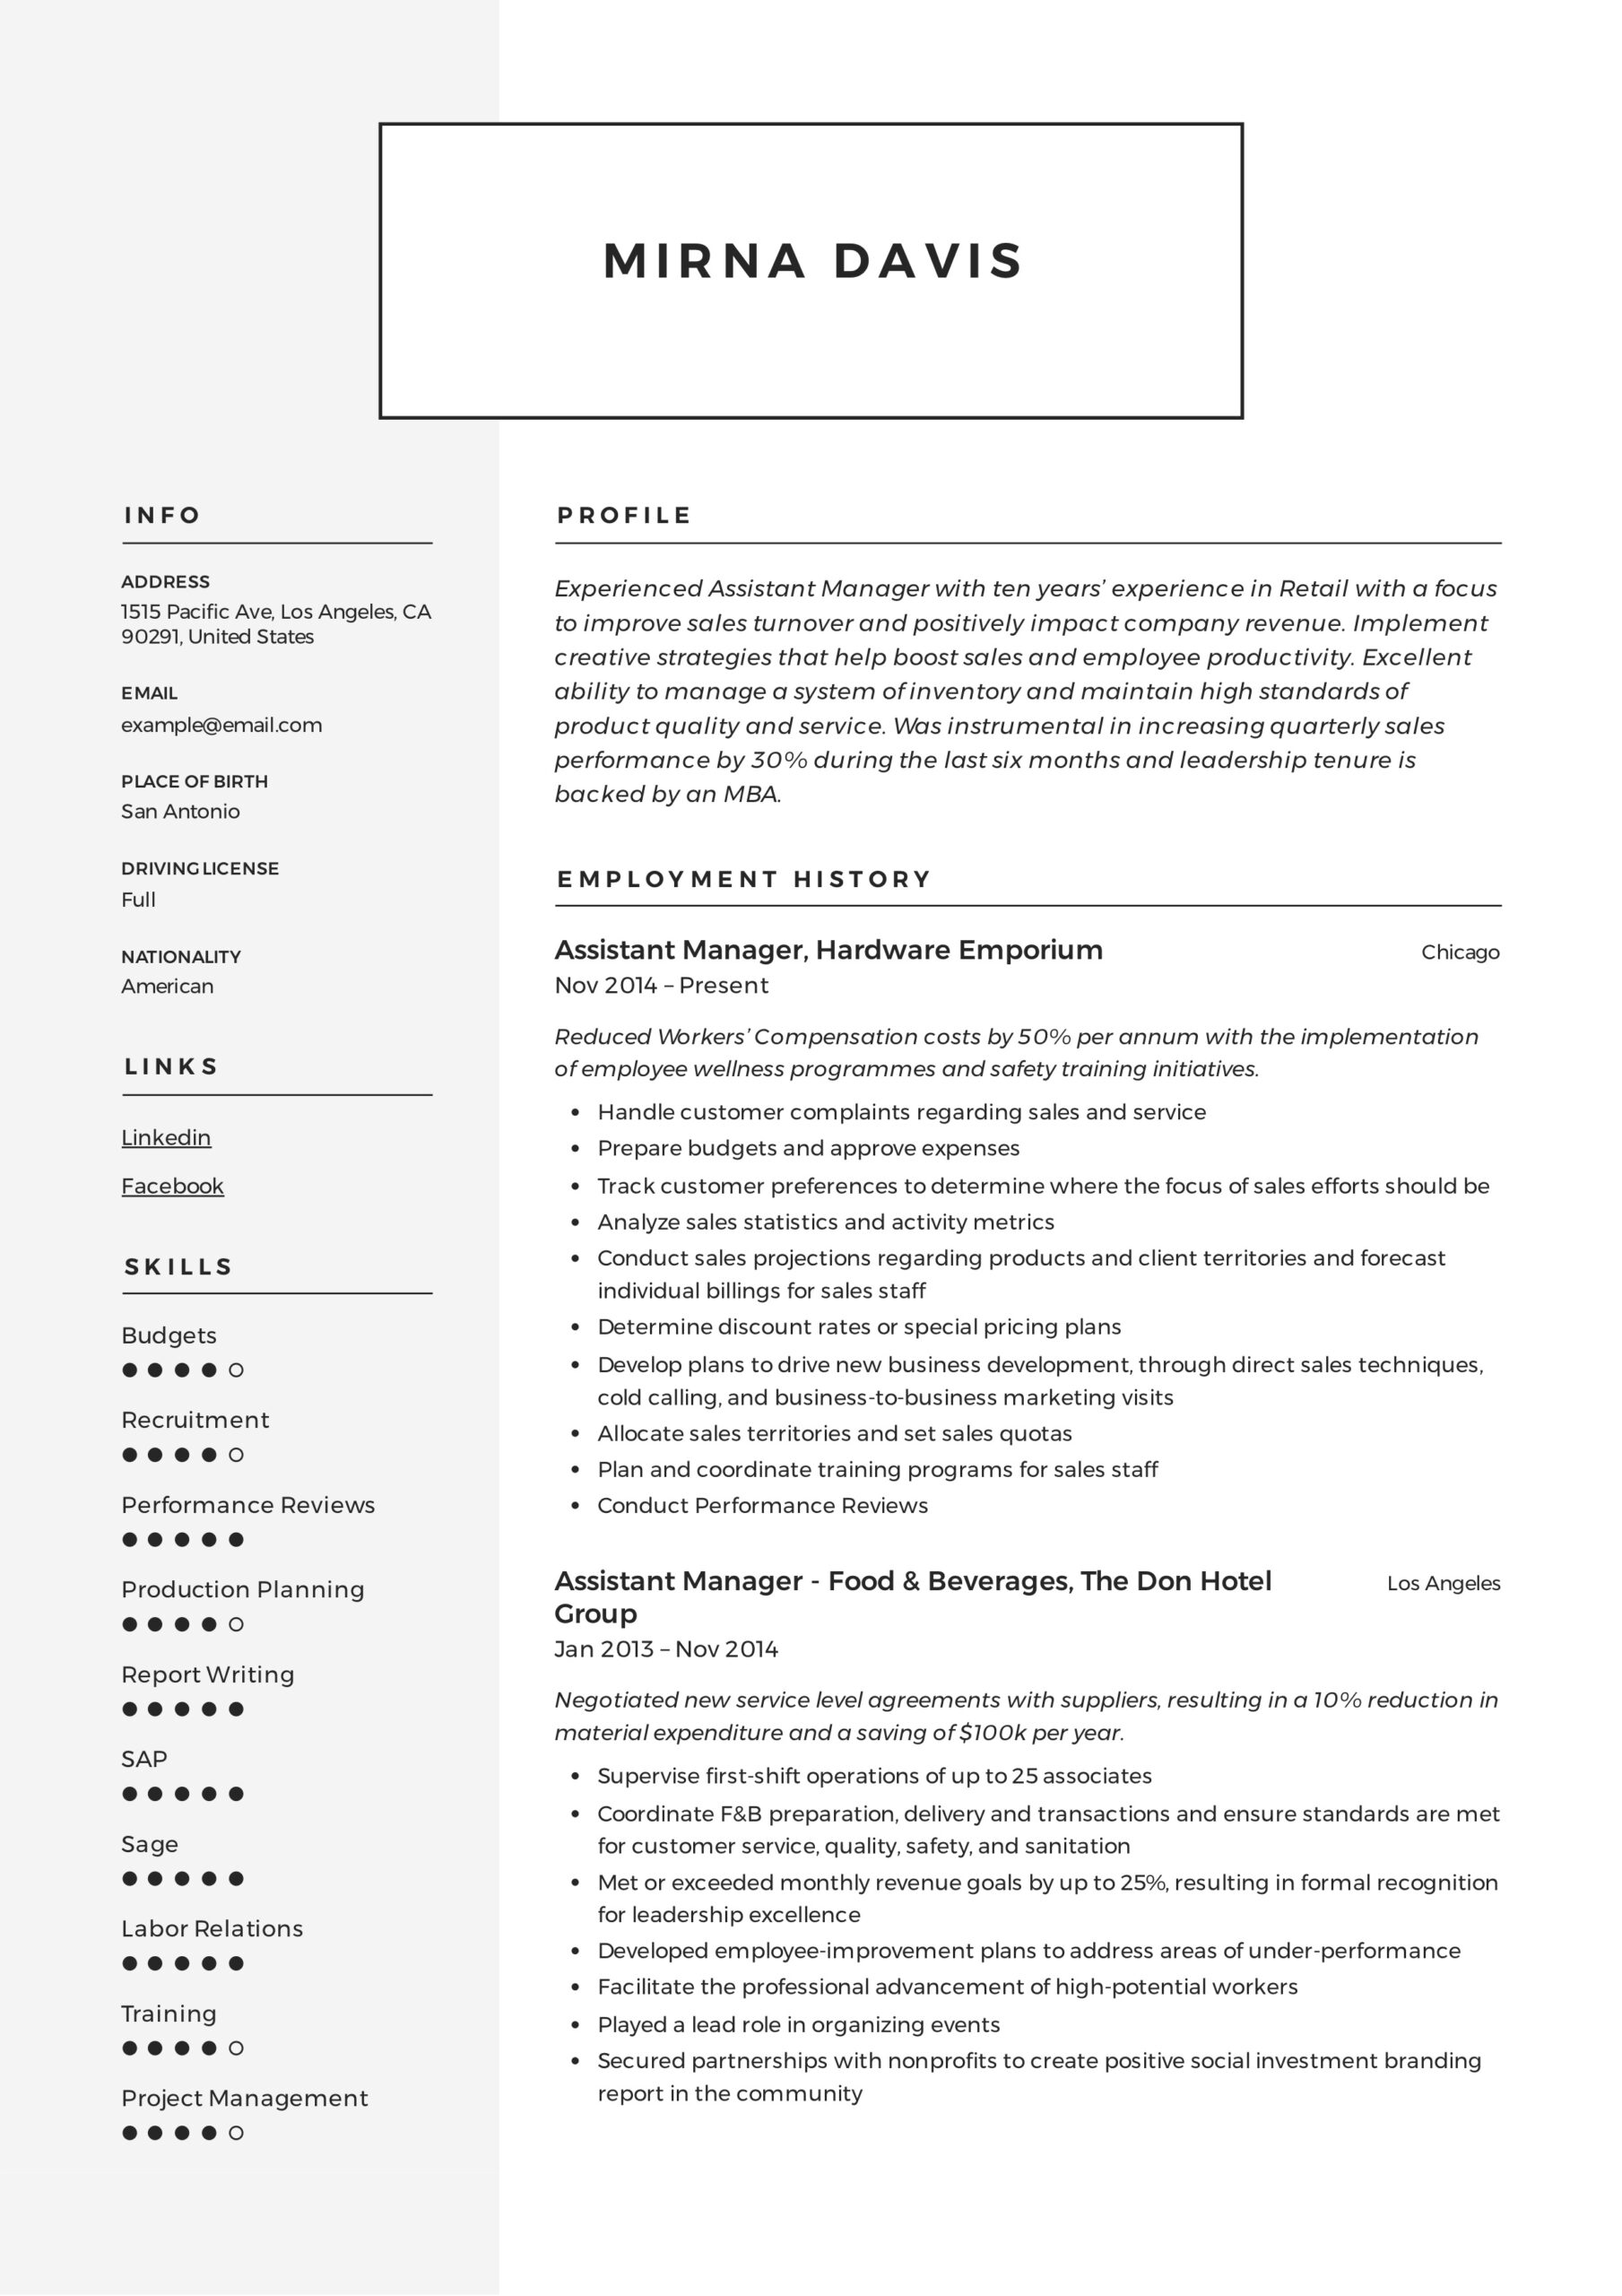 assistant manager resume writing guide samples pdf retail training mirna study abroad Resume Retail Training Manager Resume